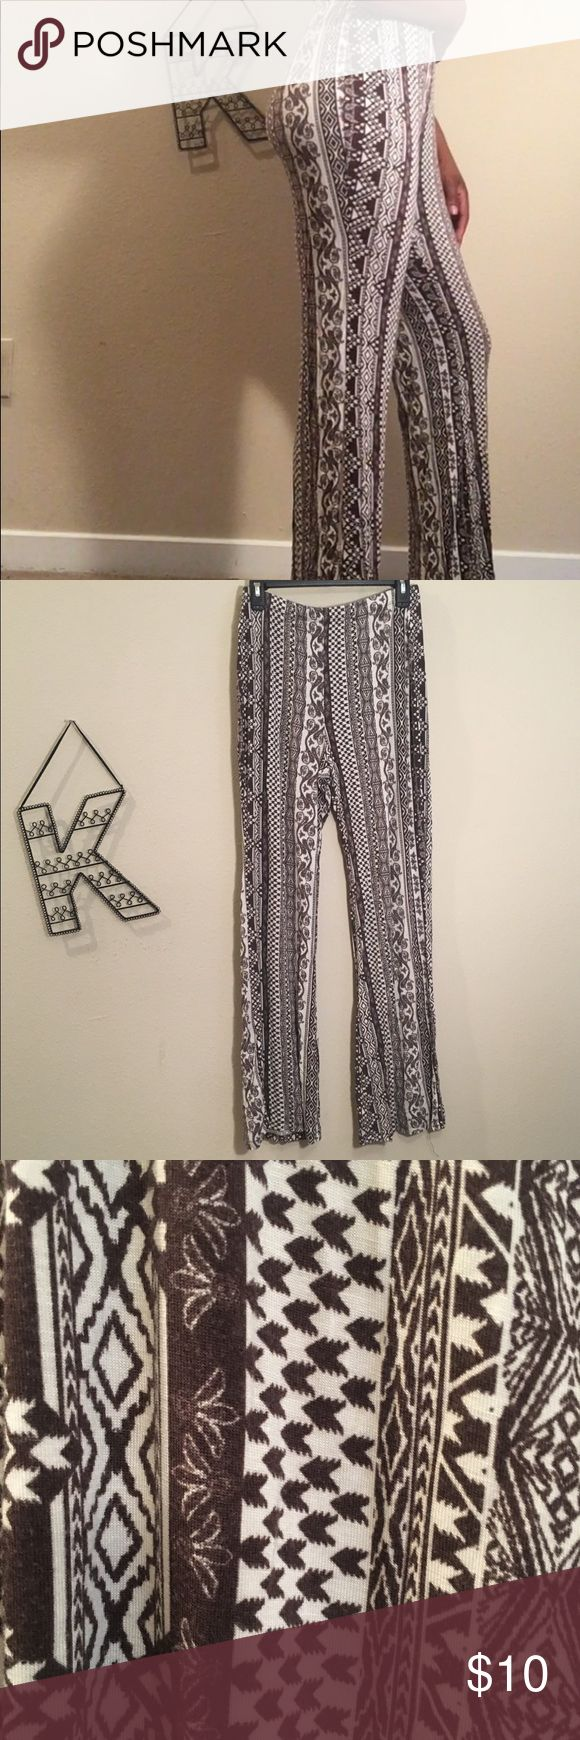 Tribal print pants Stretchy tribal print pants, size small, Cato Cato Pants Boot Cut & Flare